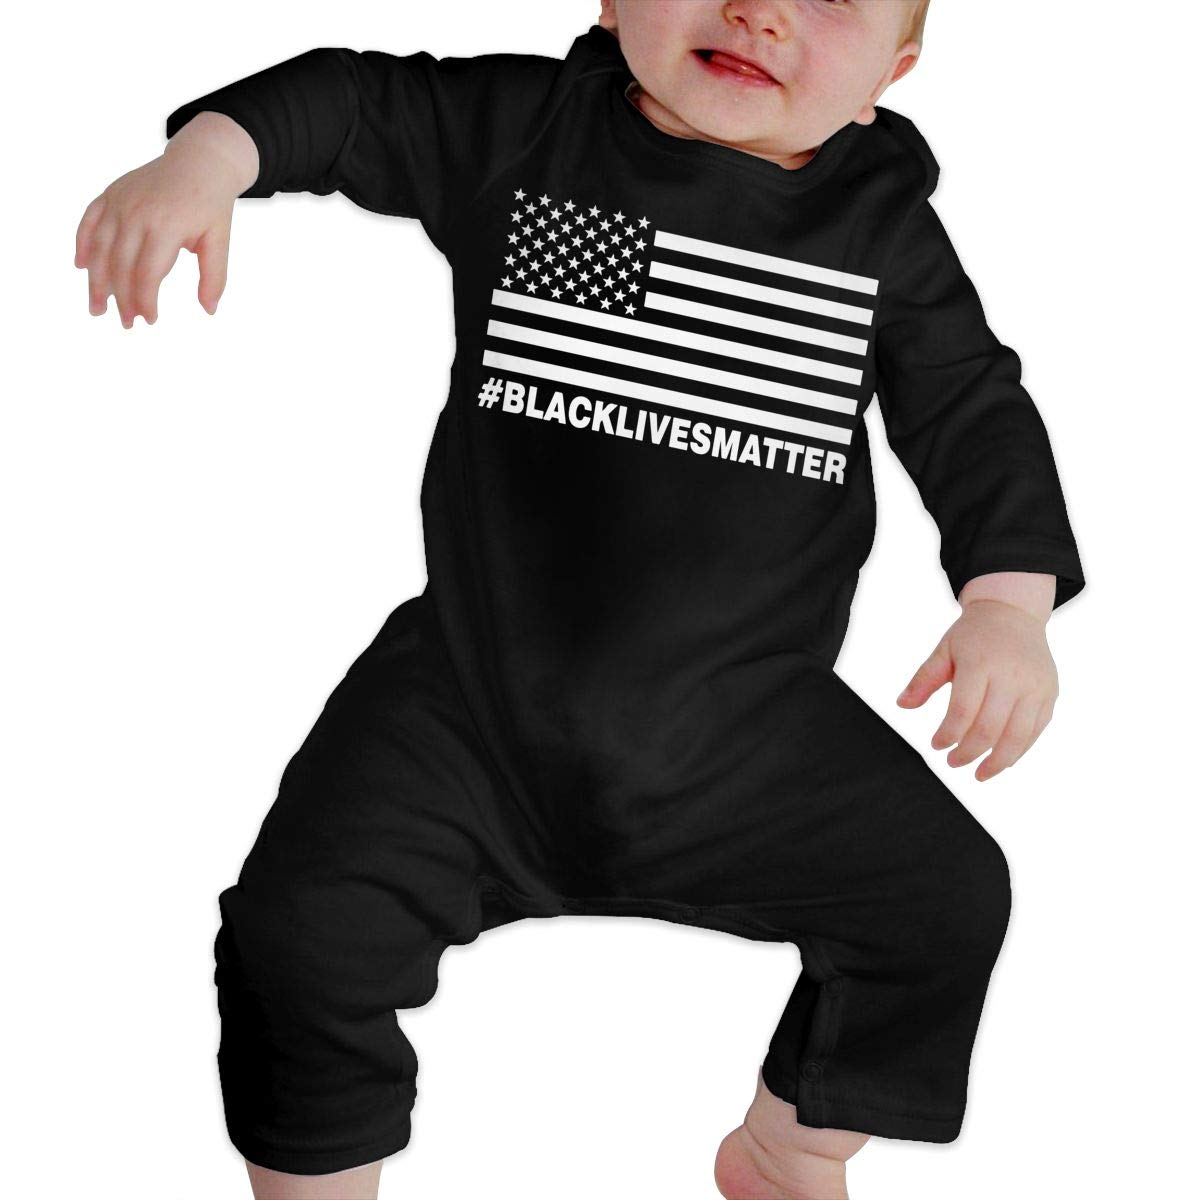 Black Lives Matter Newborn Baby Bodysuit Long Sleeve Overalls Outfits Clothes Romper Jumpsuit for Baby Boy Girl